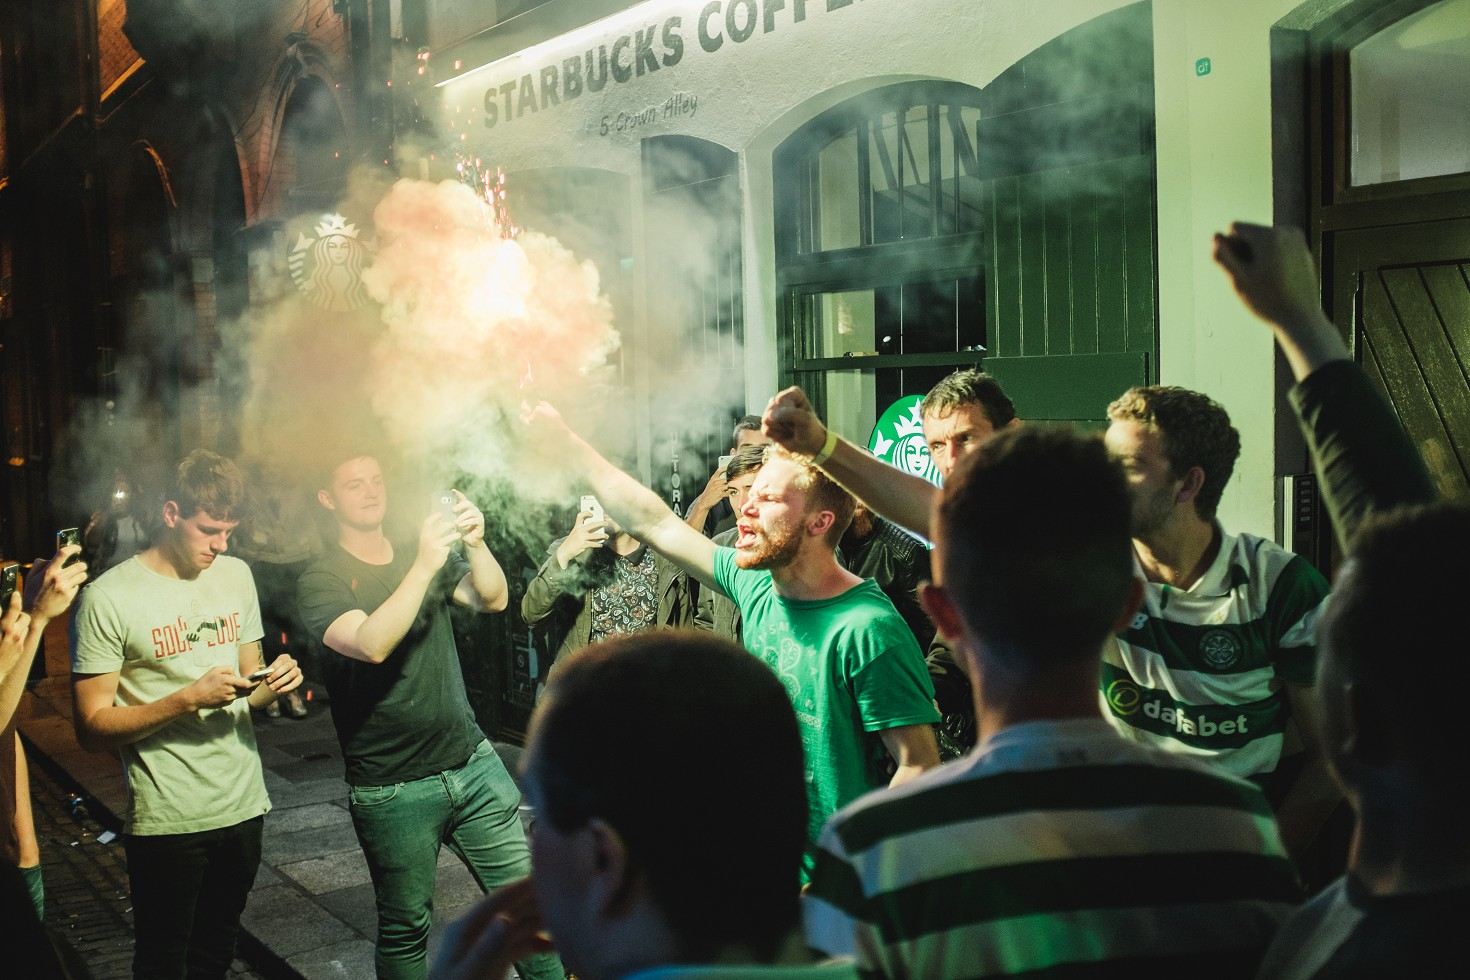 Celtic-Barca-Barcelona-Dublin-Temple-Bar-Aviva-Ireland-Fans (51 von 68)